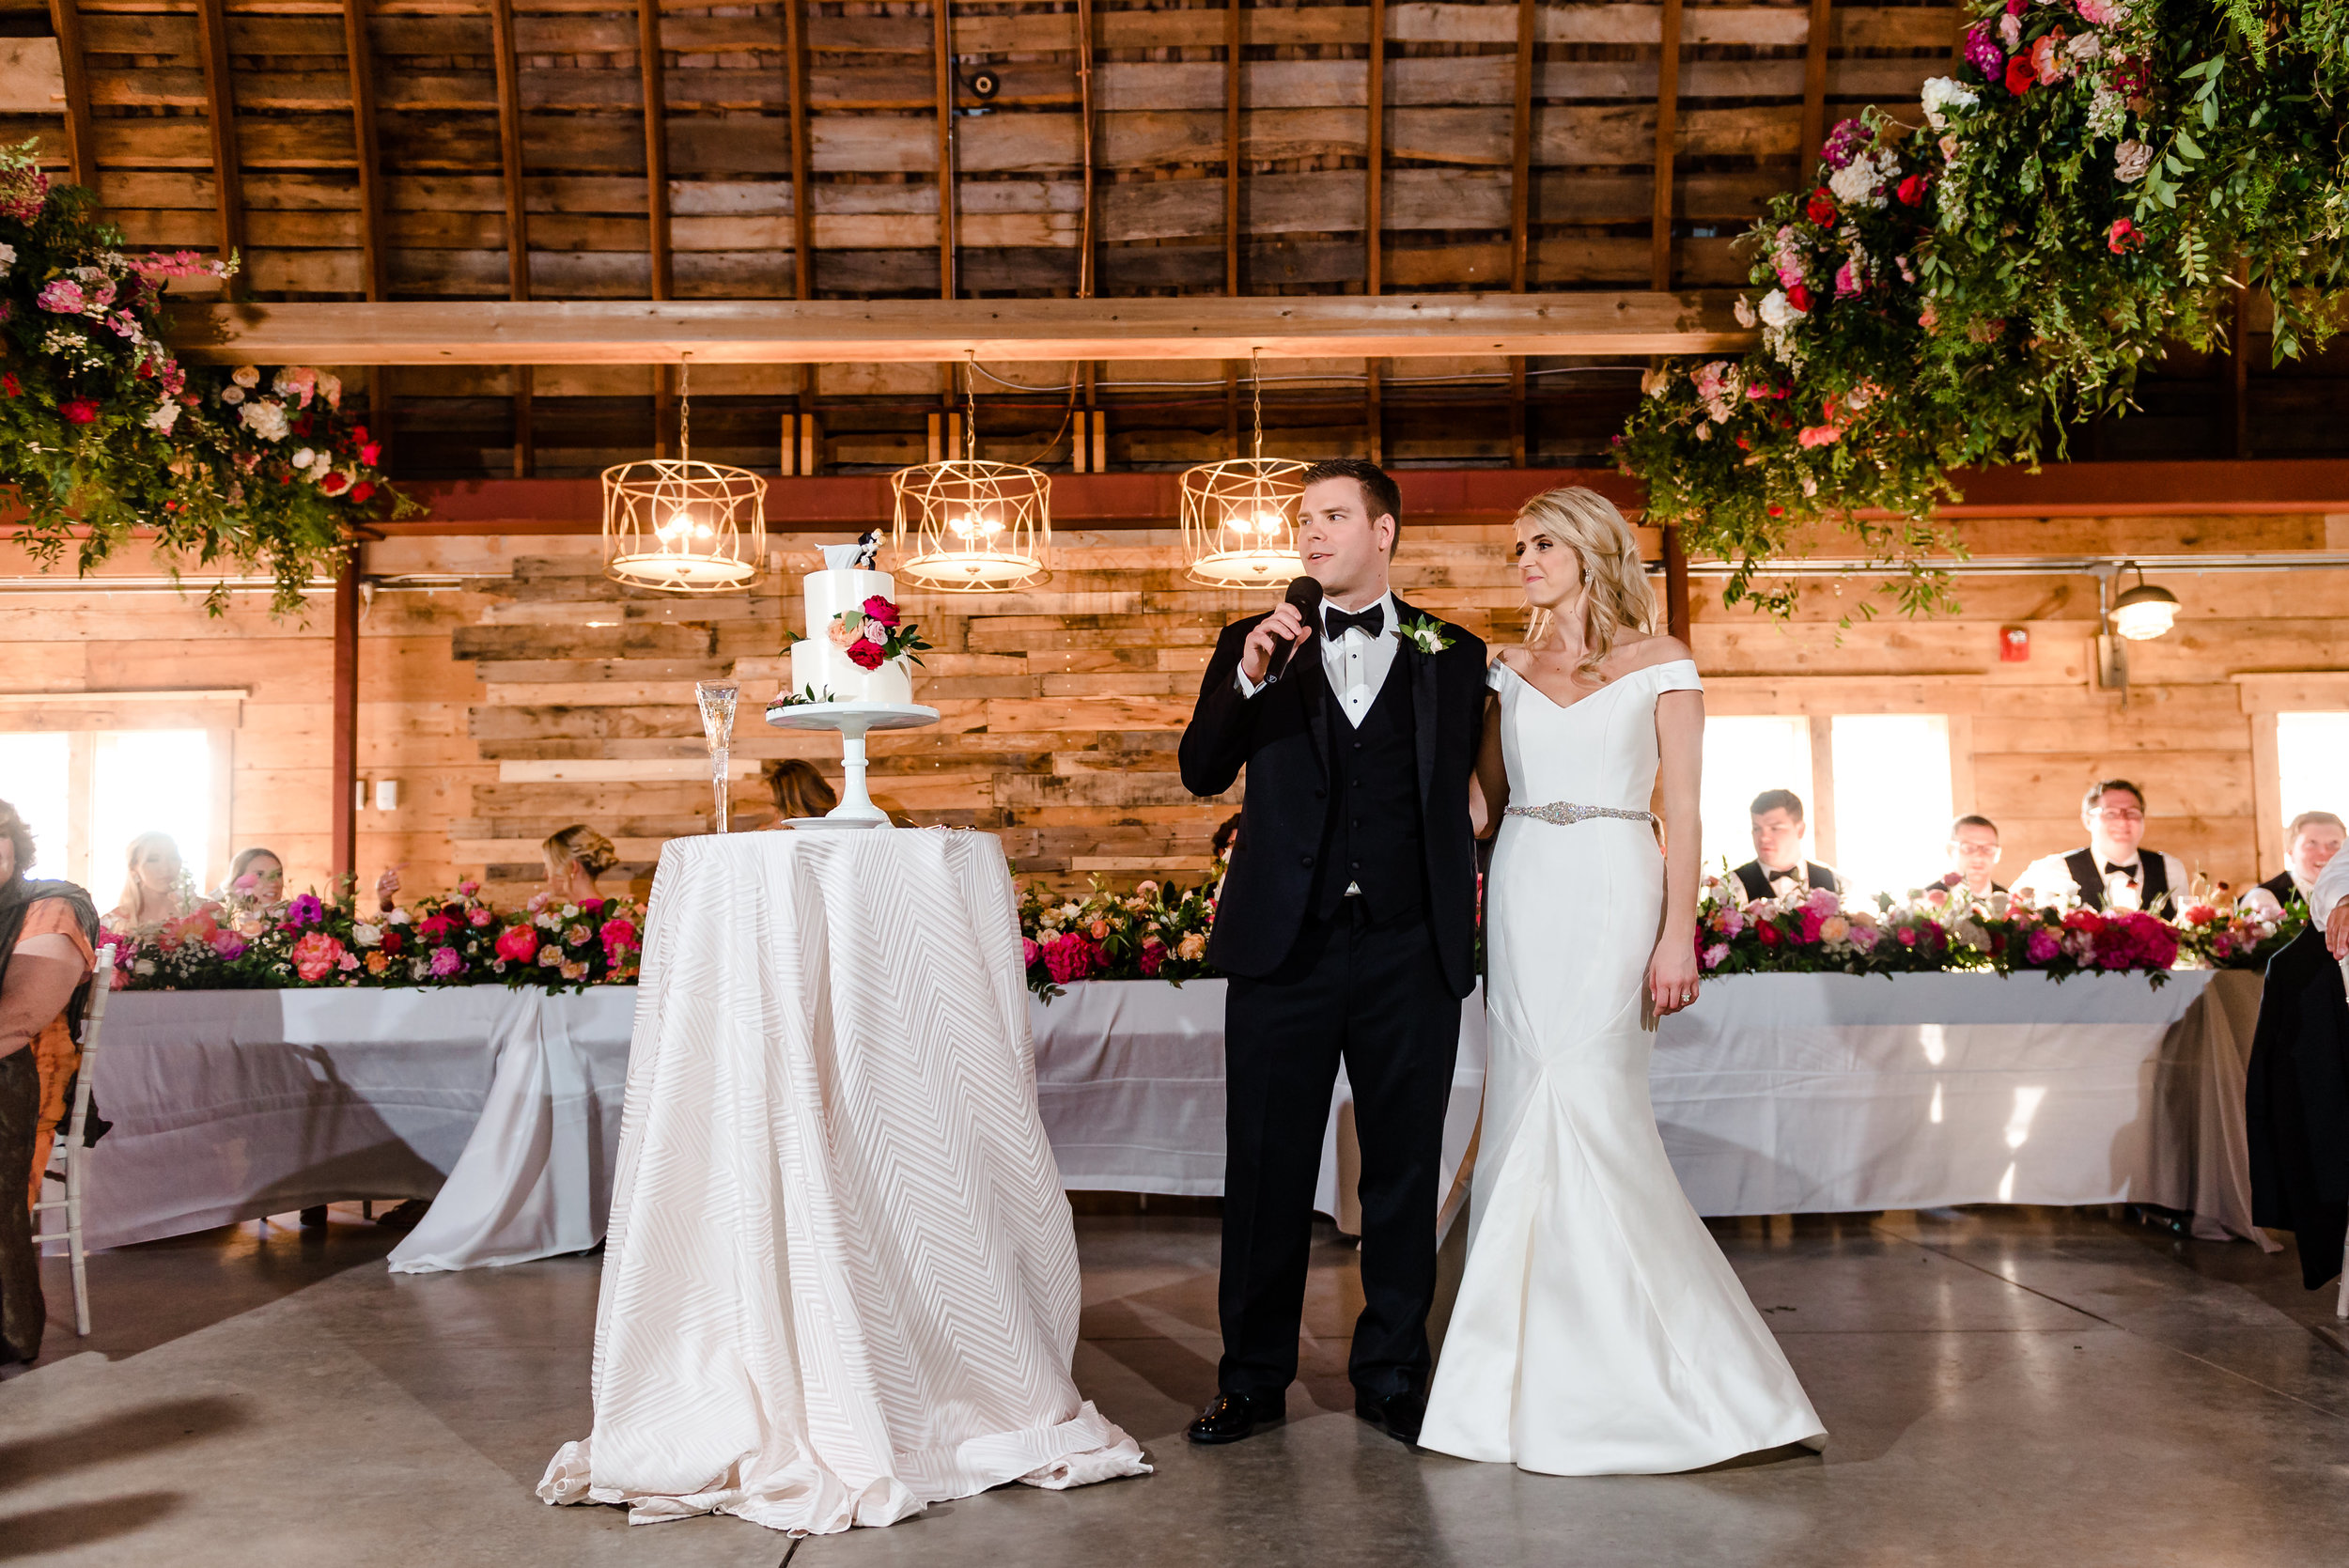 Historic John P Furber Farm Wedding Reception - Cottage Grove, MN Luxury Wedding Photographer